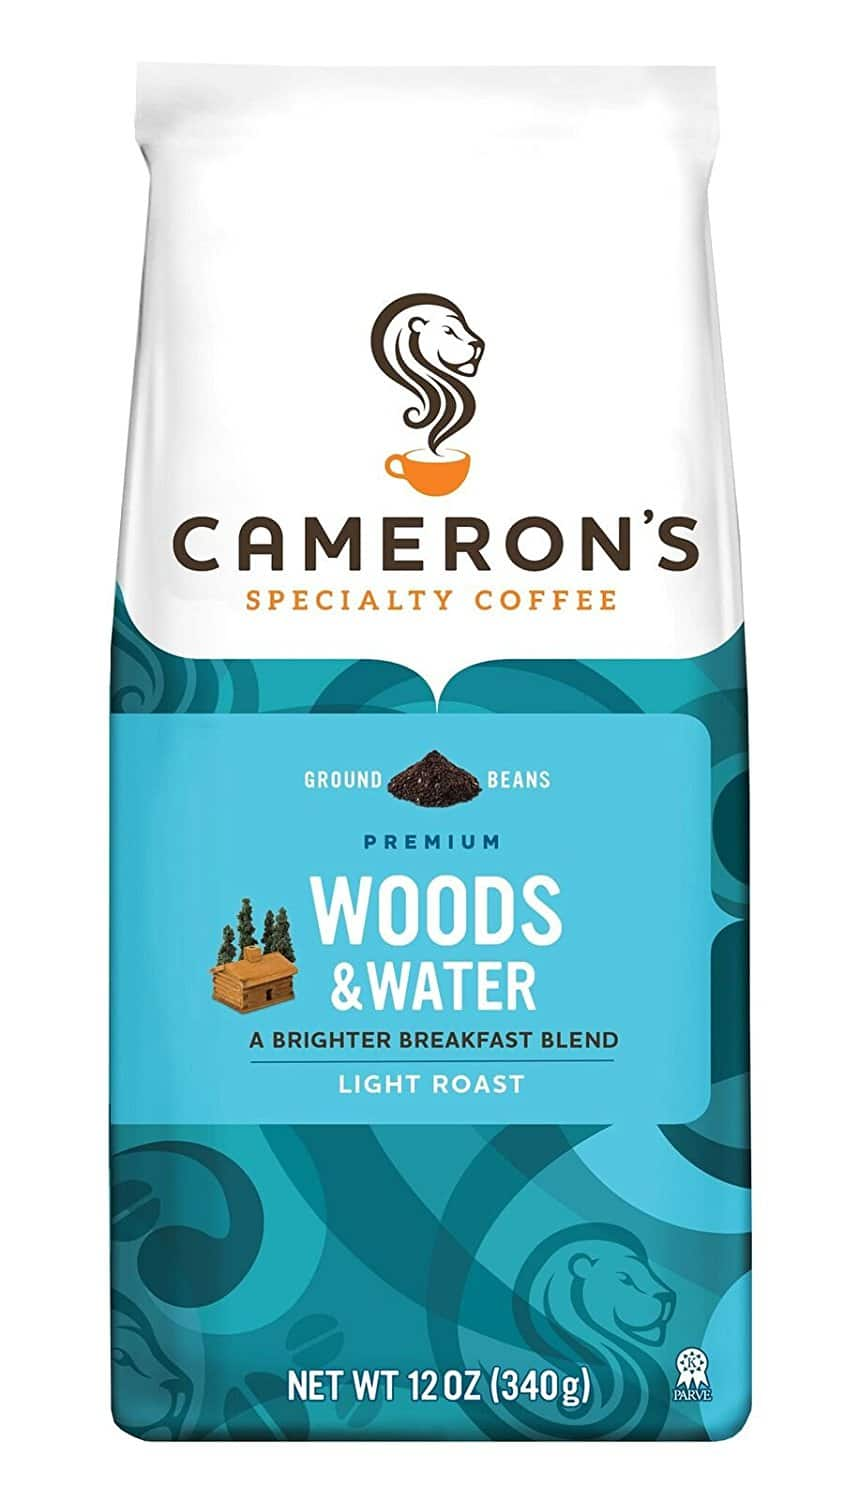 3-Pack of 12oz Cameron's Amaretto Ground Coffee $4.28 or Less + Free Shipping Amazon.com